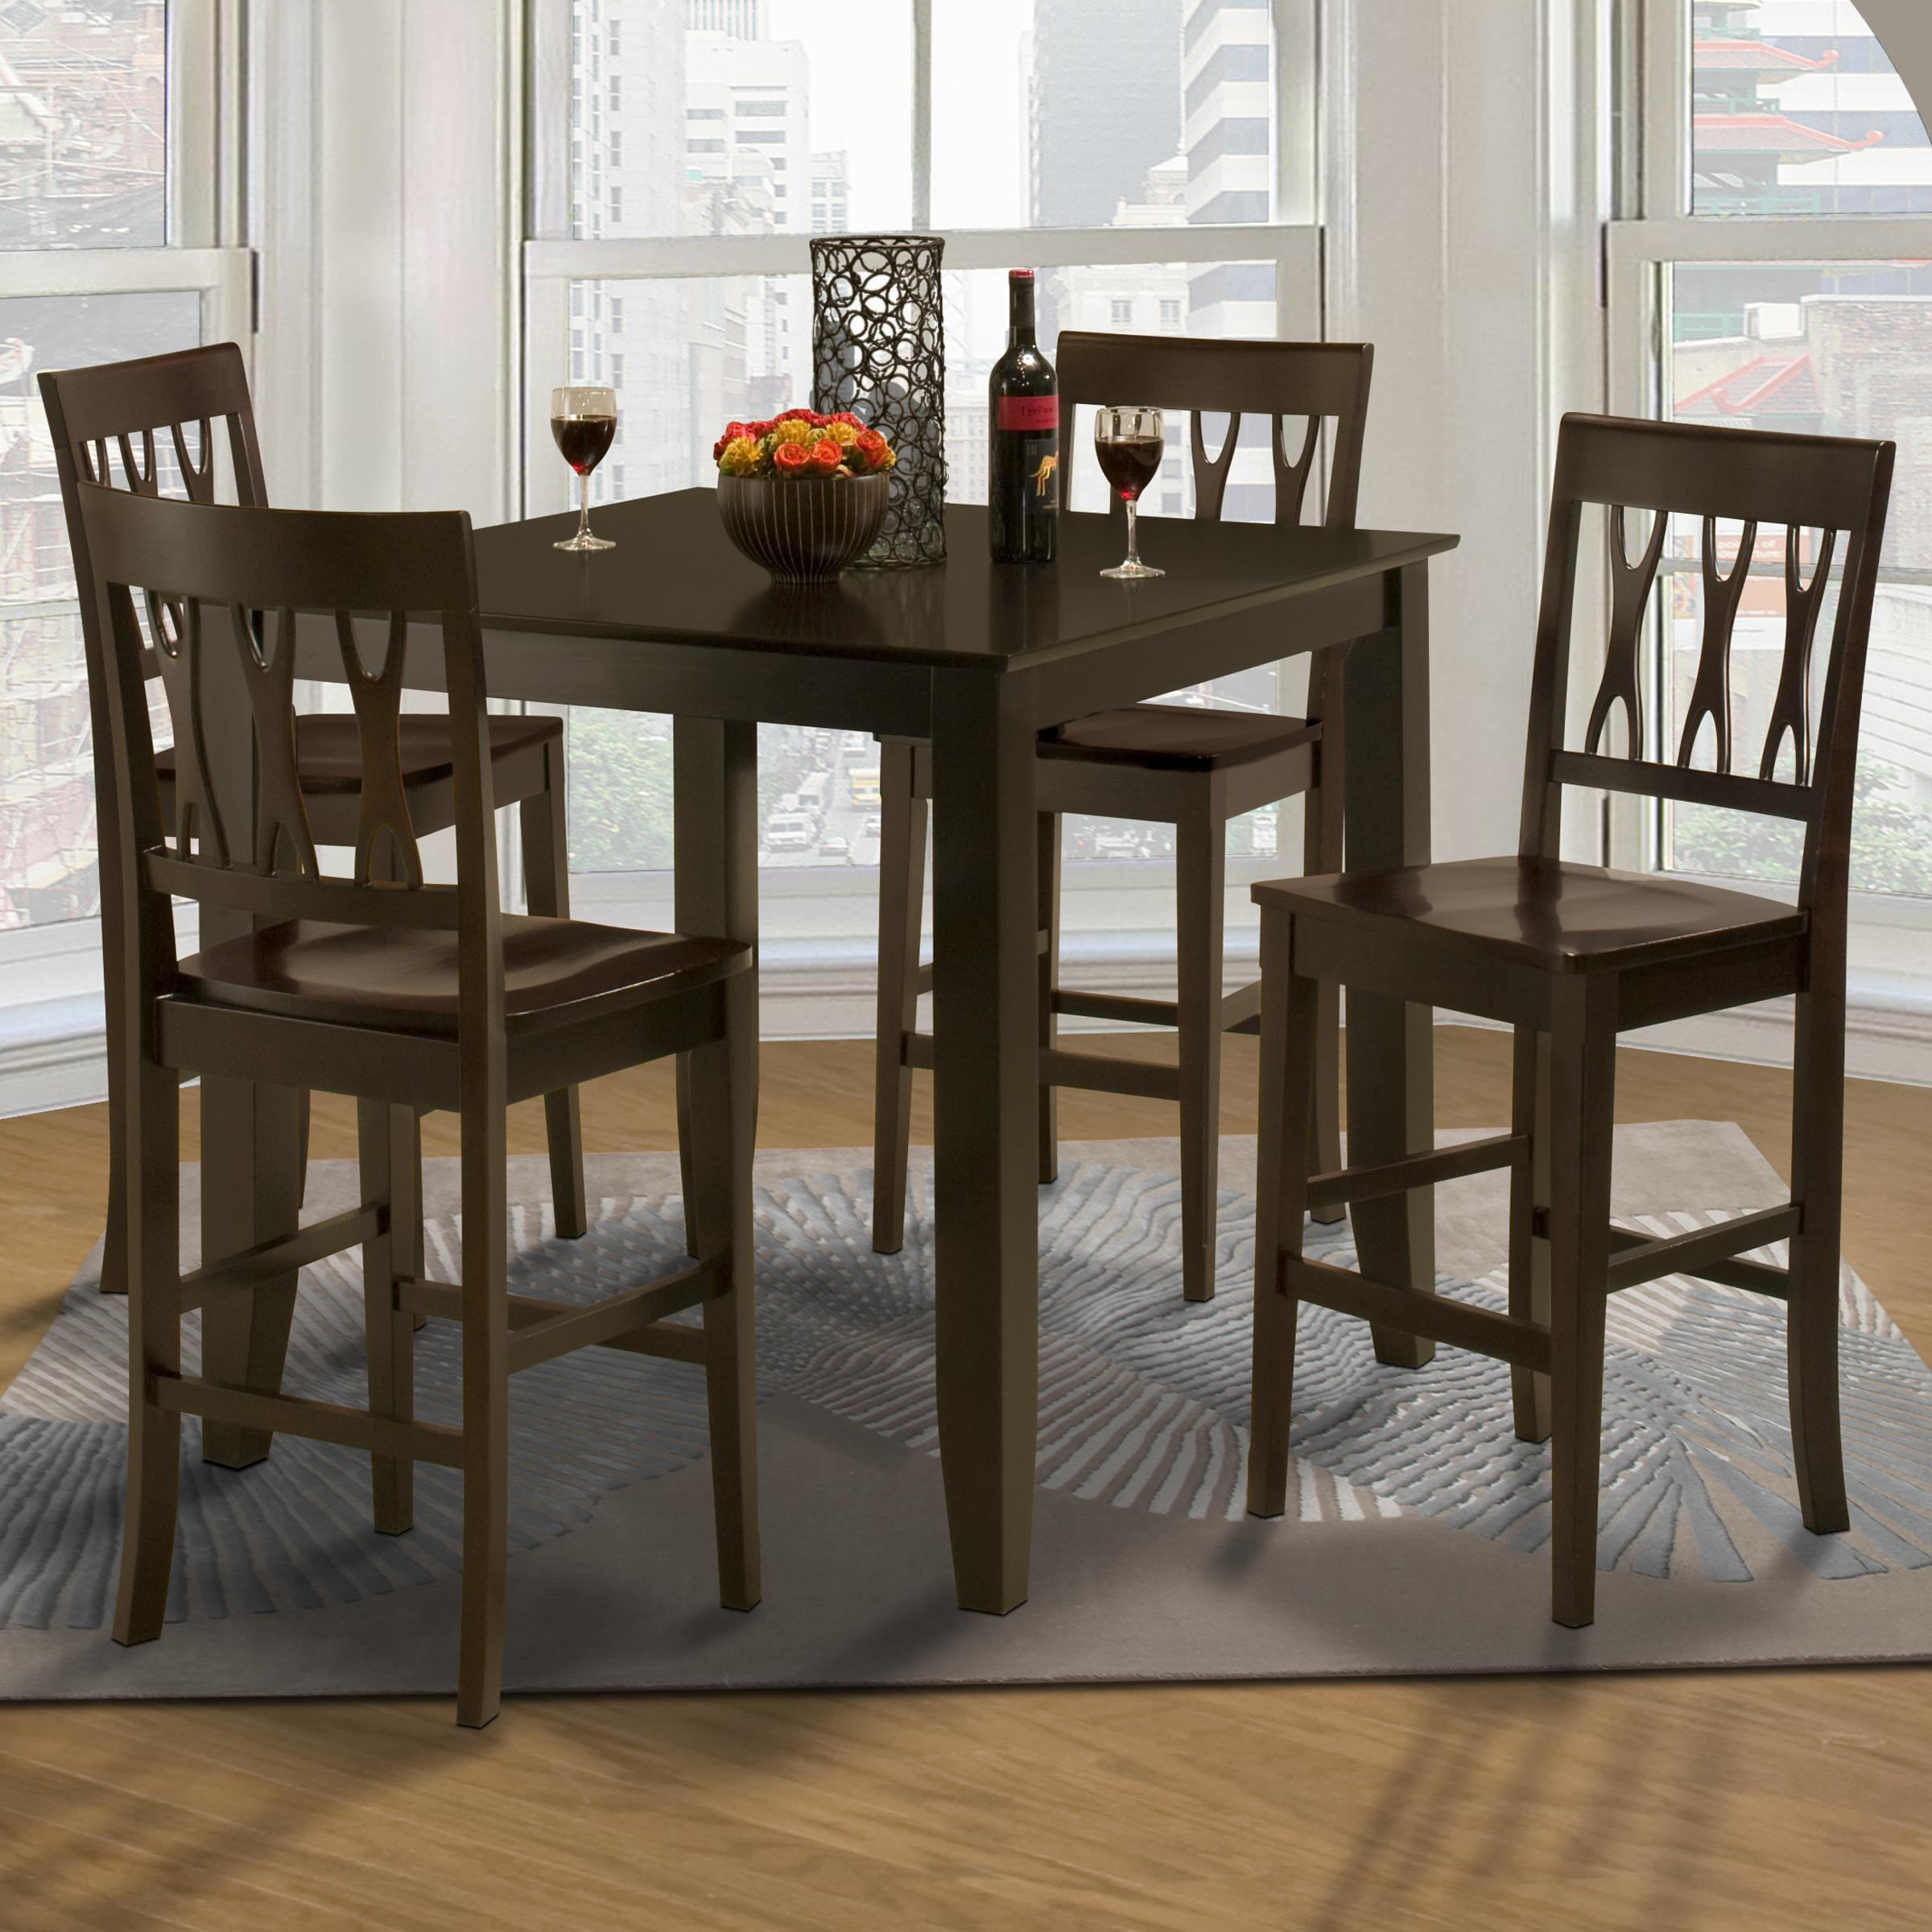 New Classic Style 19 Small Pub Table and Upholstered Chairs | Michael\u0027s Furniture Warehouse | Pub Table and Stool Sets & New Classic Style 19 Small Pub Table and Upholstered Chairs ...